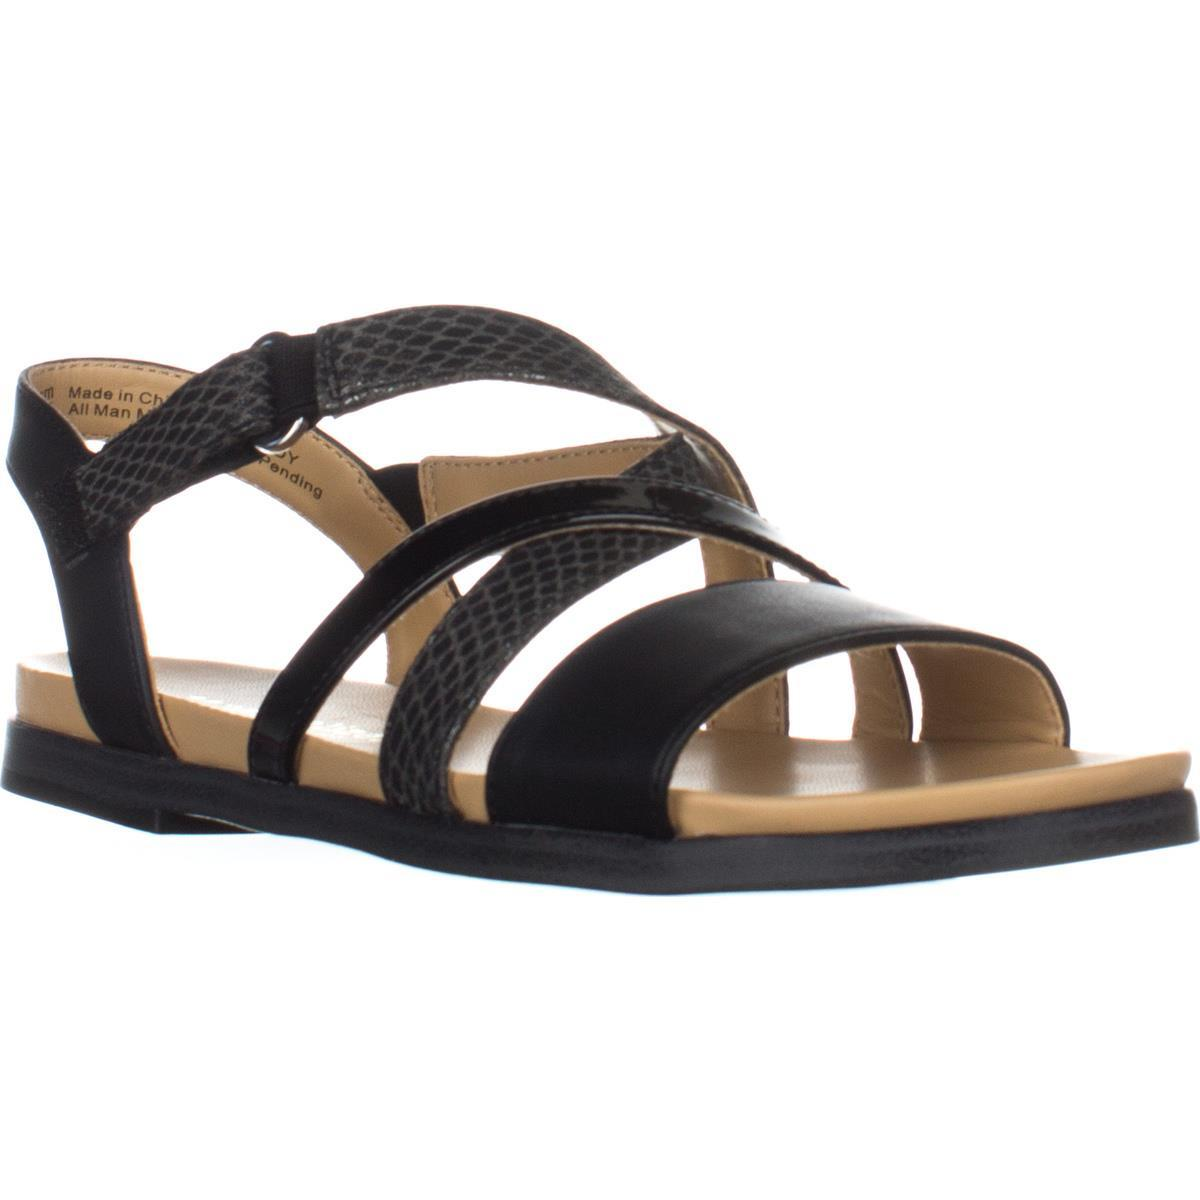 Womens Naturalizer Kandy Flat Strappy Sandals, Black by Naturalizer